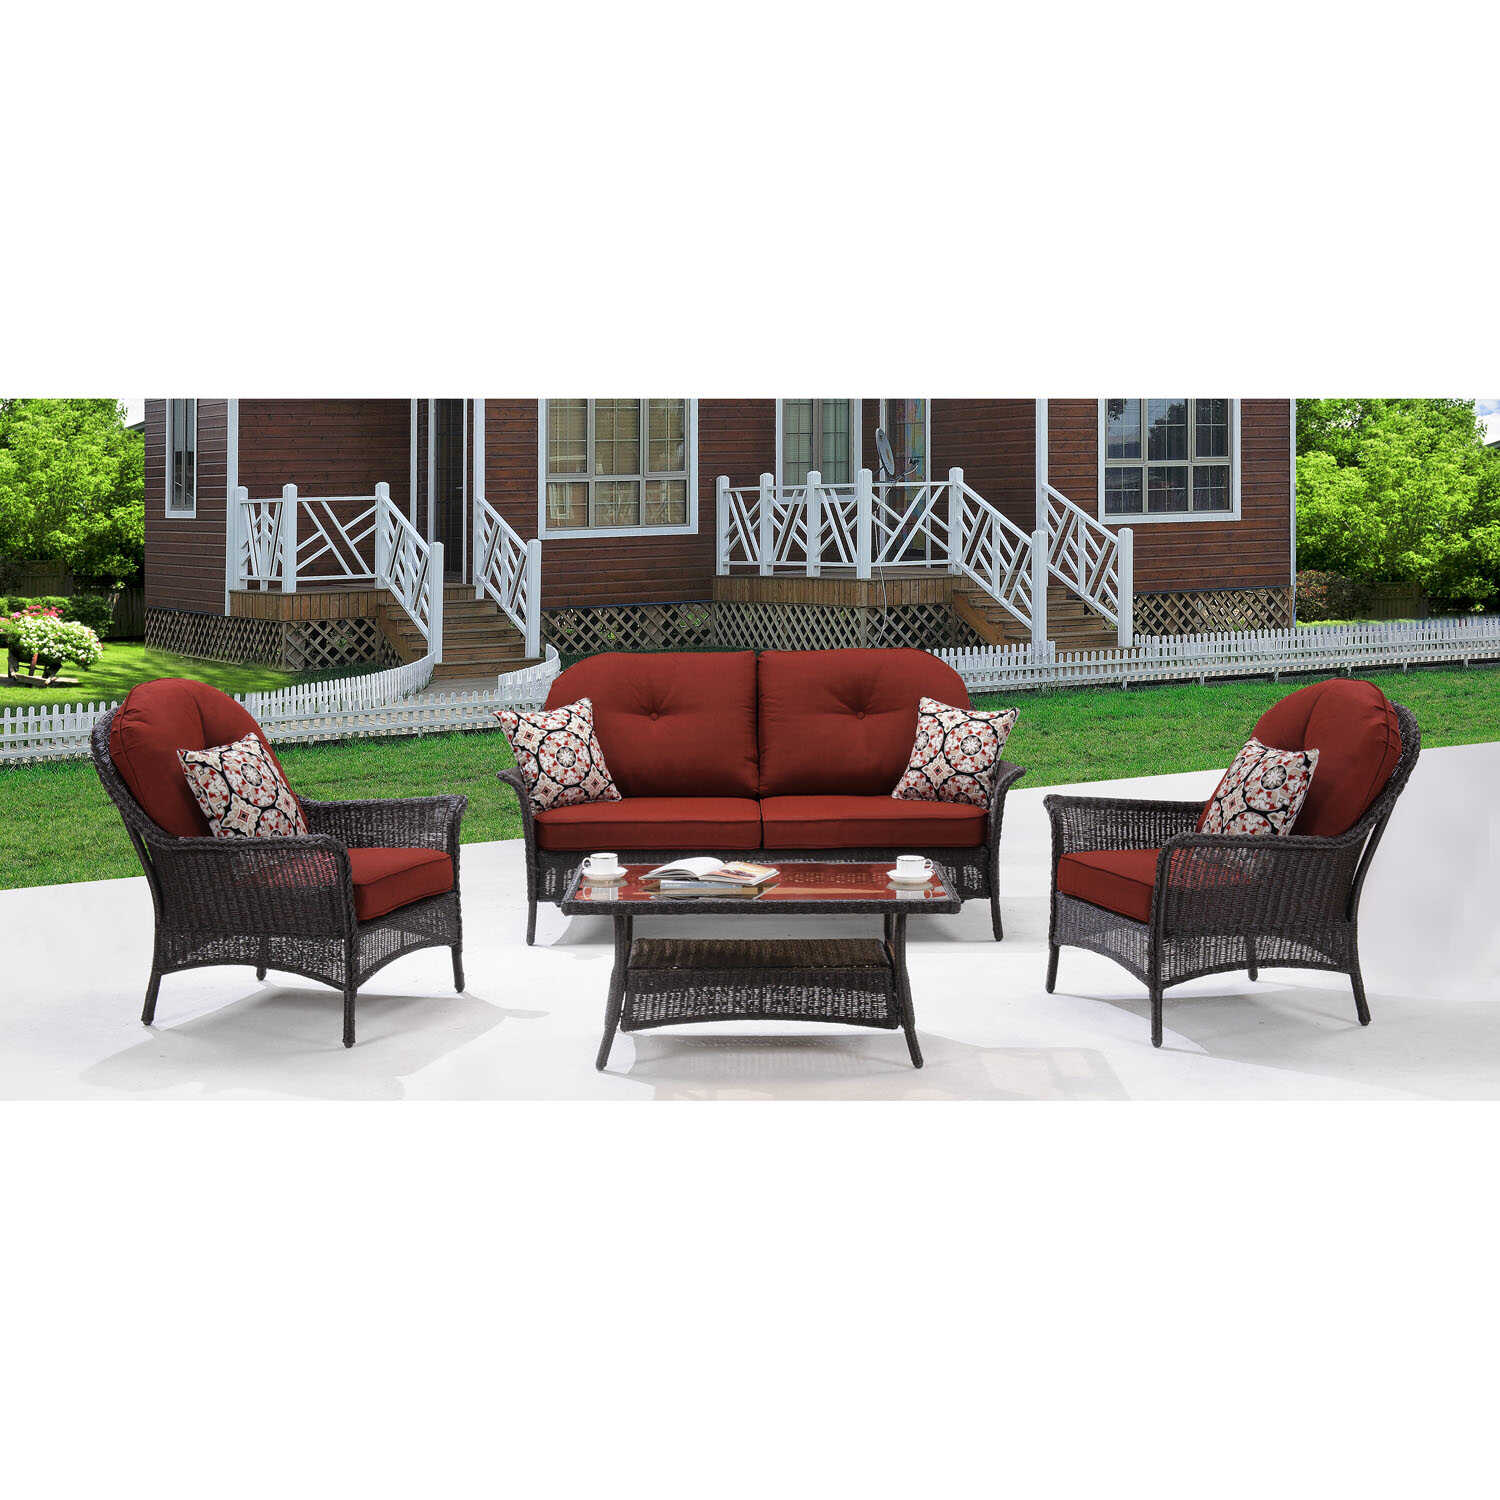 Hanover  San Marino  4 pc. Java  Steel  Patio Set  Red